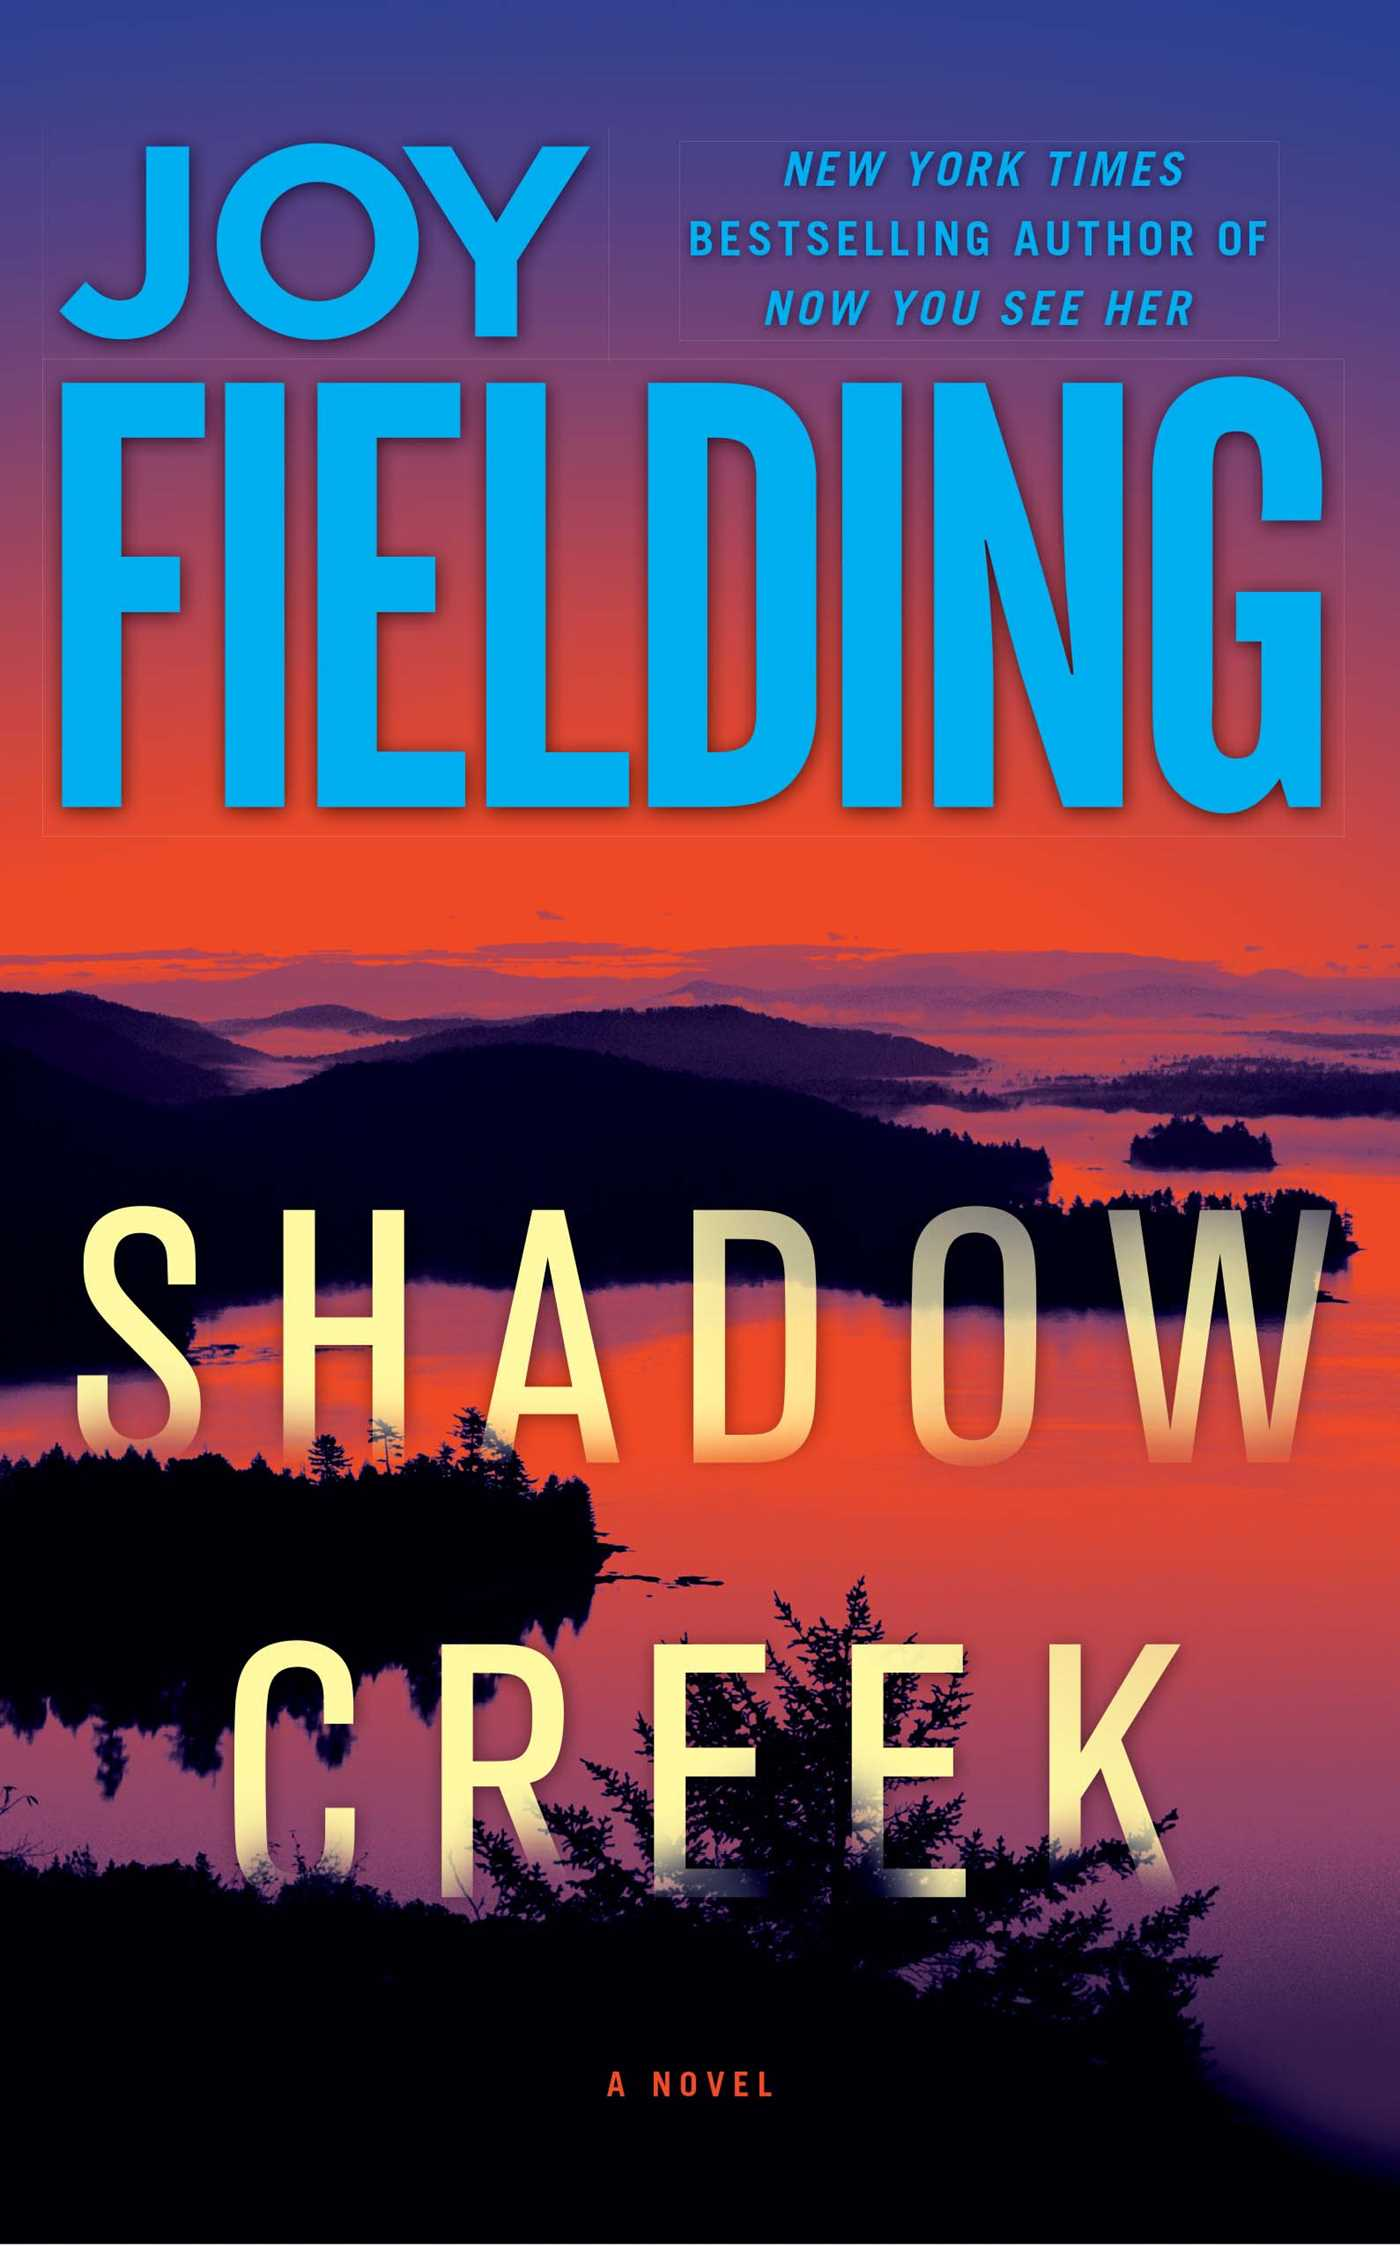 Shadow creek 9781451688160 hr